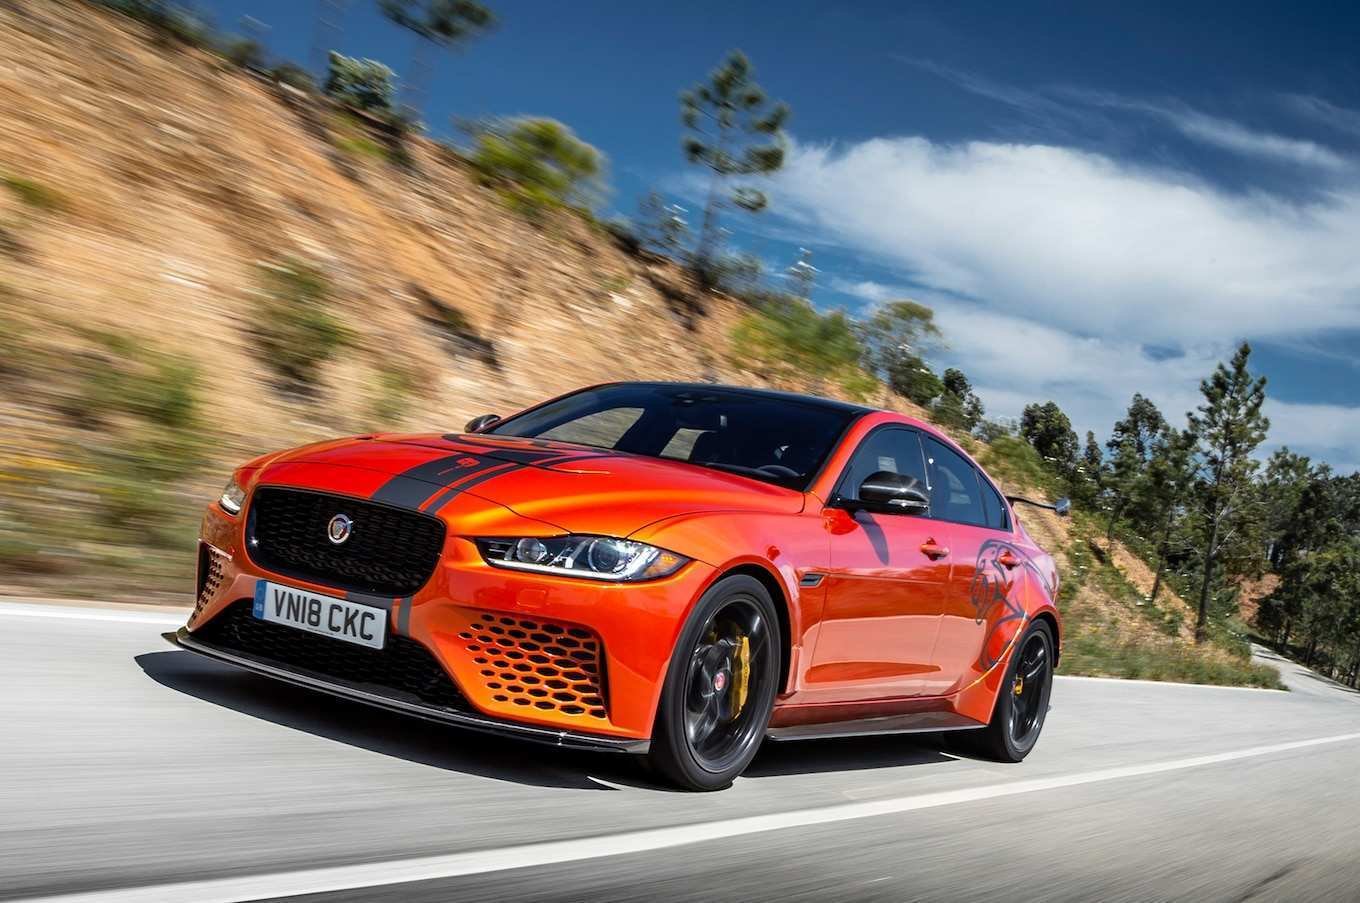 22 Best Review 2019 Jaguar Xe Svr Pictures by 2019 Jaguar Xe Svr